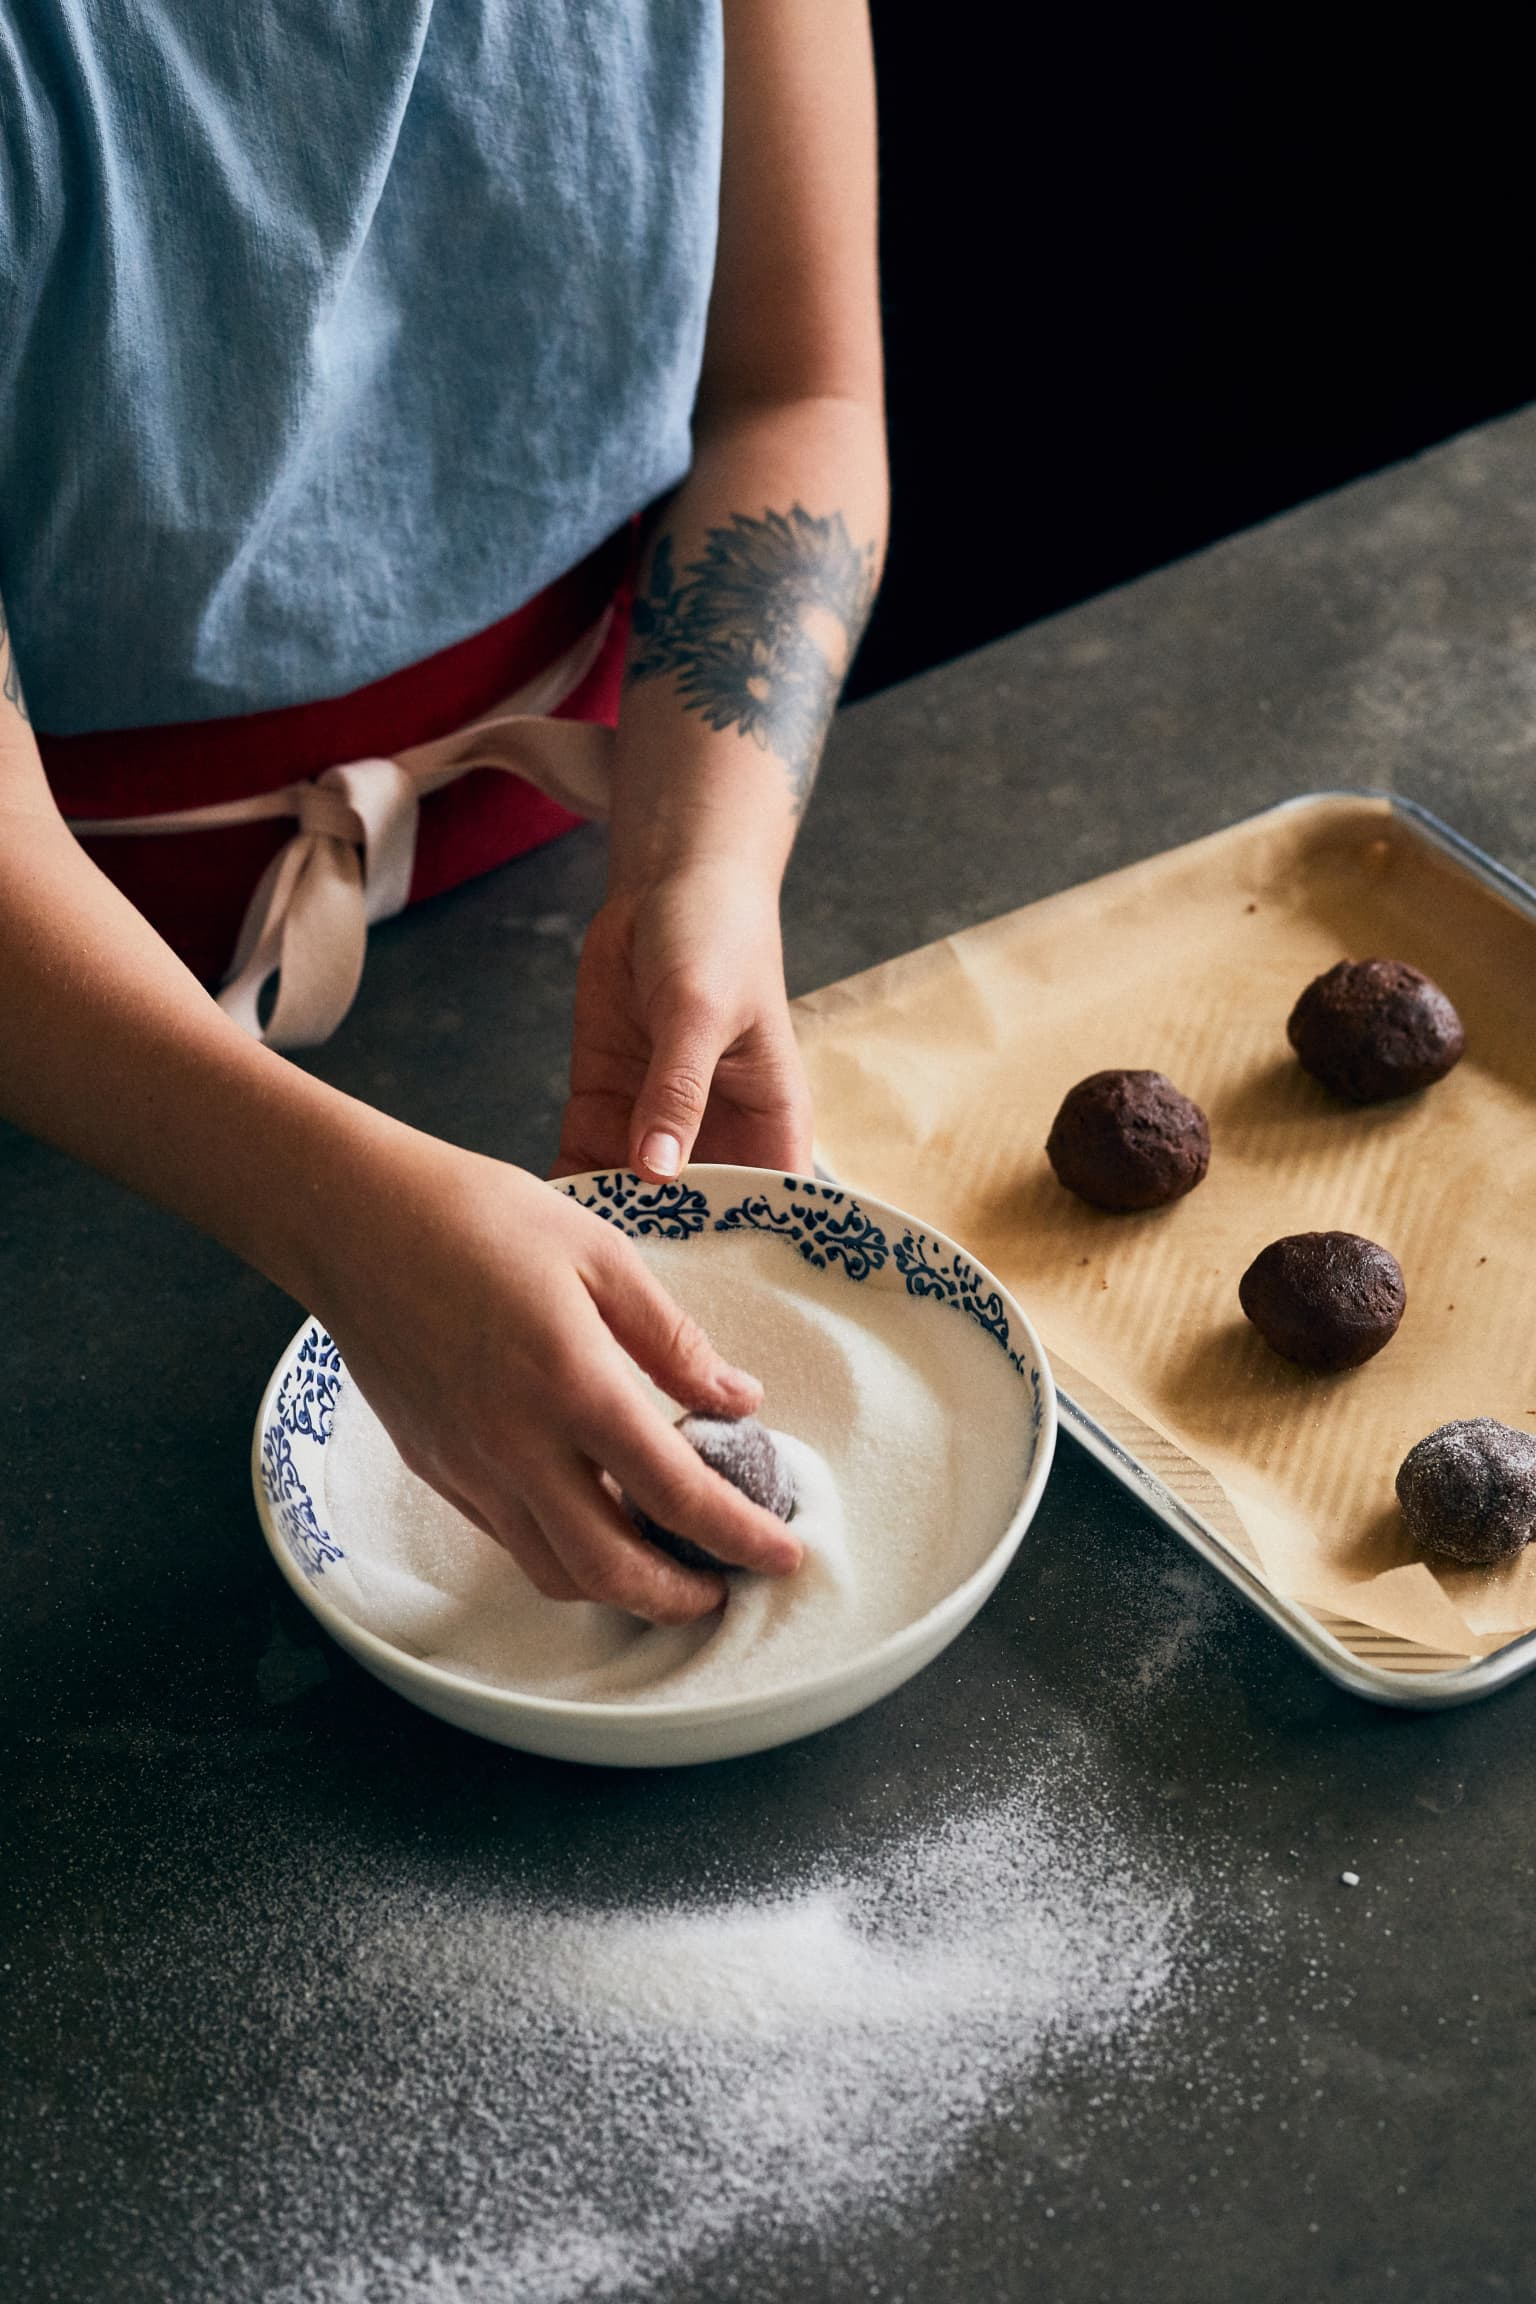 Plated x Food52 Campaign